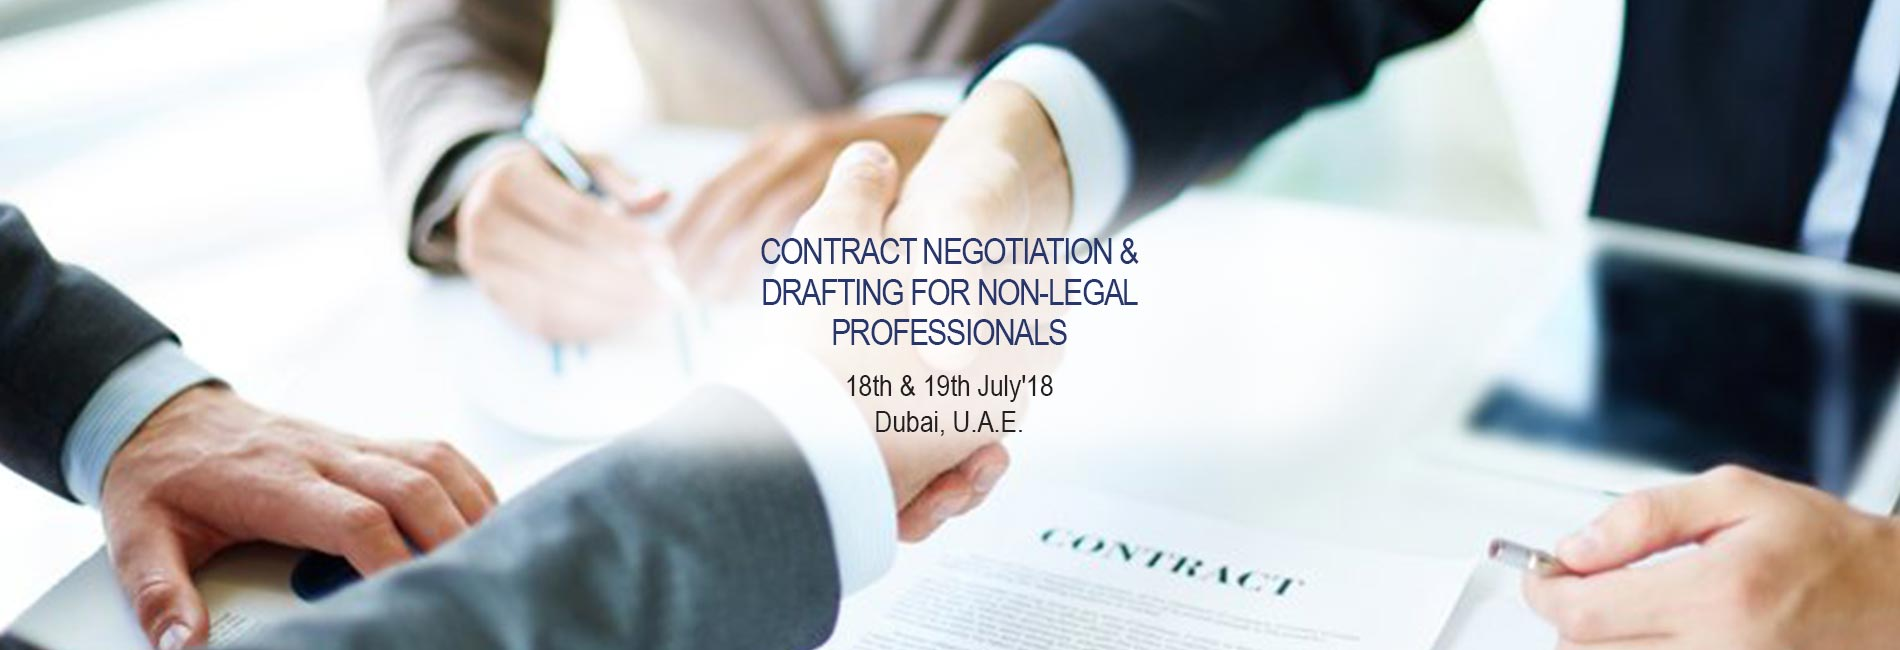 Contract Negotiation & Drafting for Non-Legal Professionals